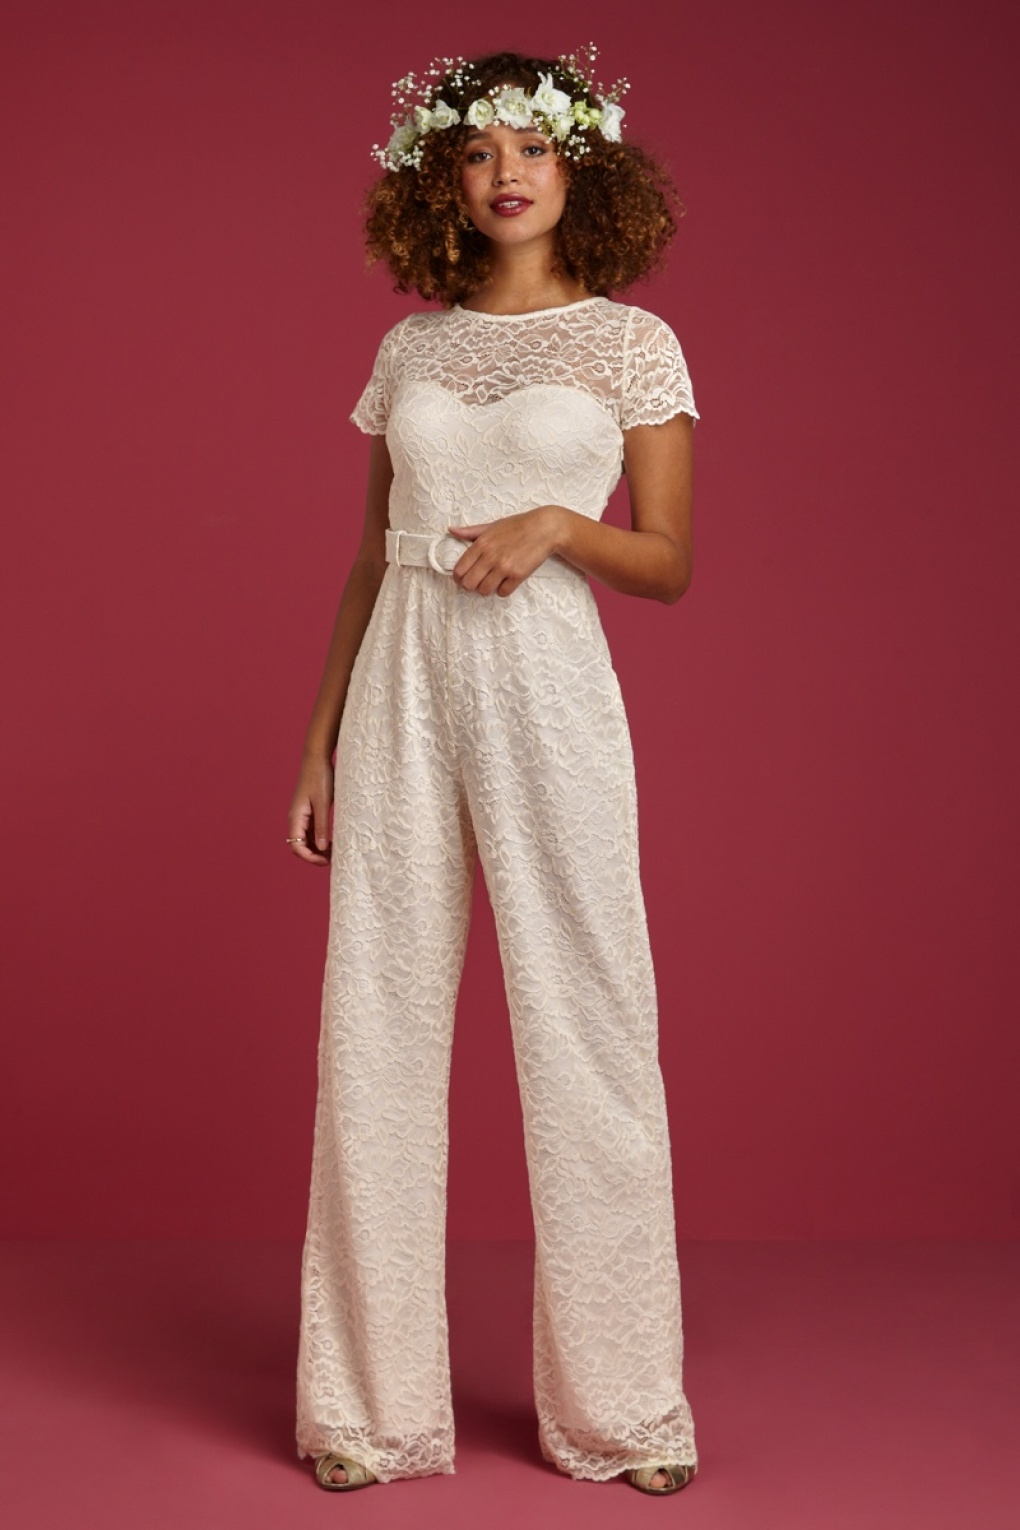 Vintage Inspired Wedding Dress | Vintage Style Wedding Dresses Betty Dentelle Wedding Jumpsuit in Cream £232.86 AT vintagedancer.com